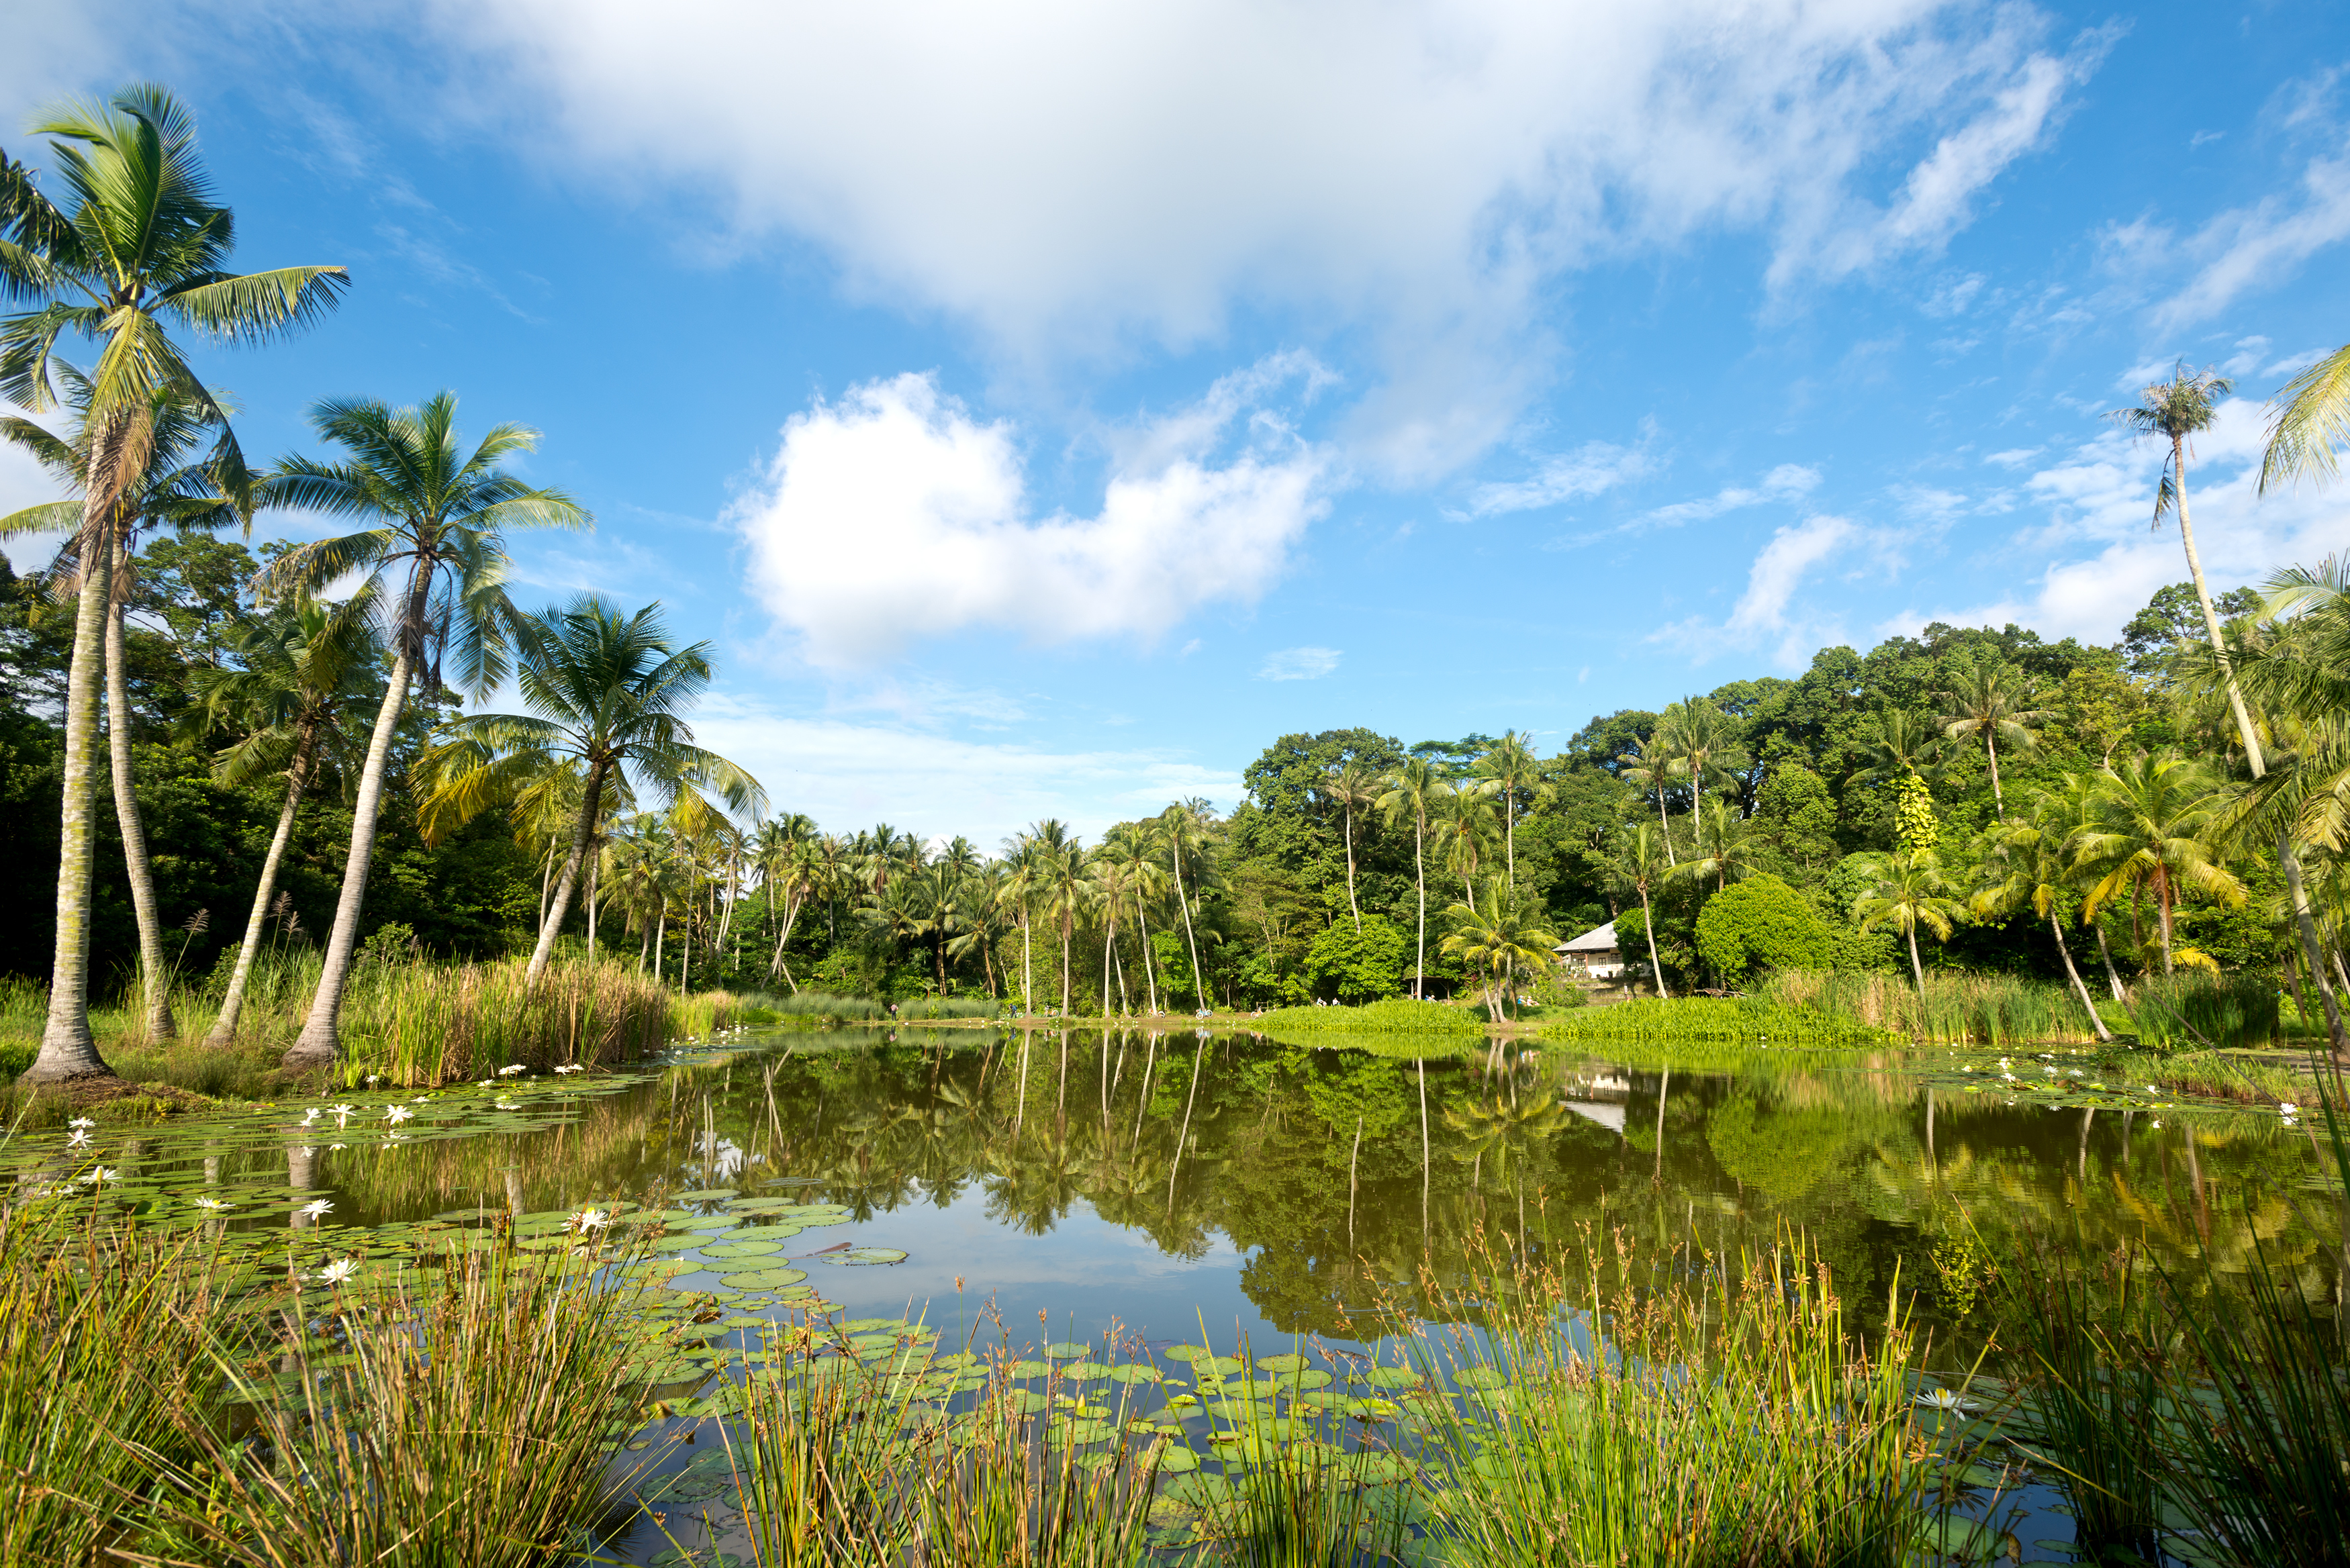 Can you believe this is Singapore? Pulau Ubin is one of our natural gems...